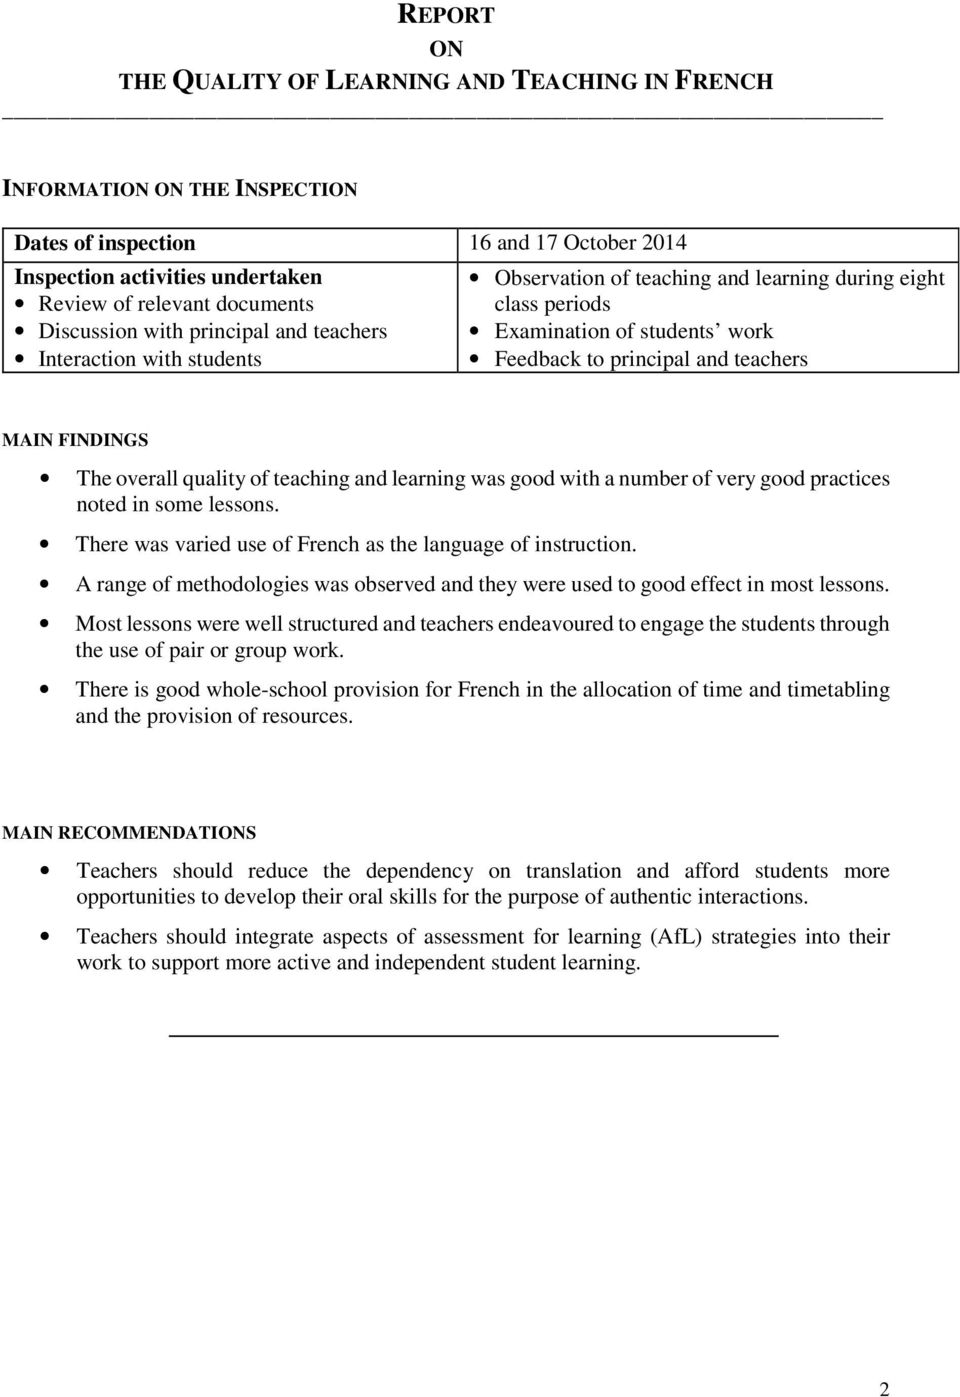 FINDINGS The overall quality of teaching and learning was good with a number of very good practices noted in some lessons. There was varied use of French as the language of instruction.